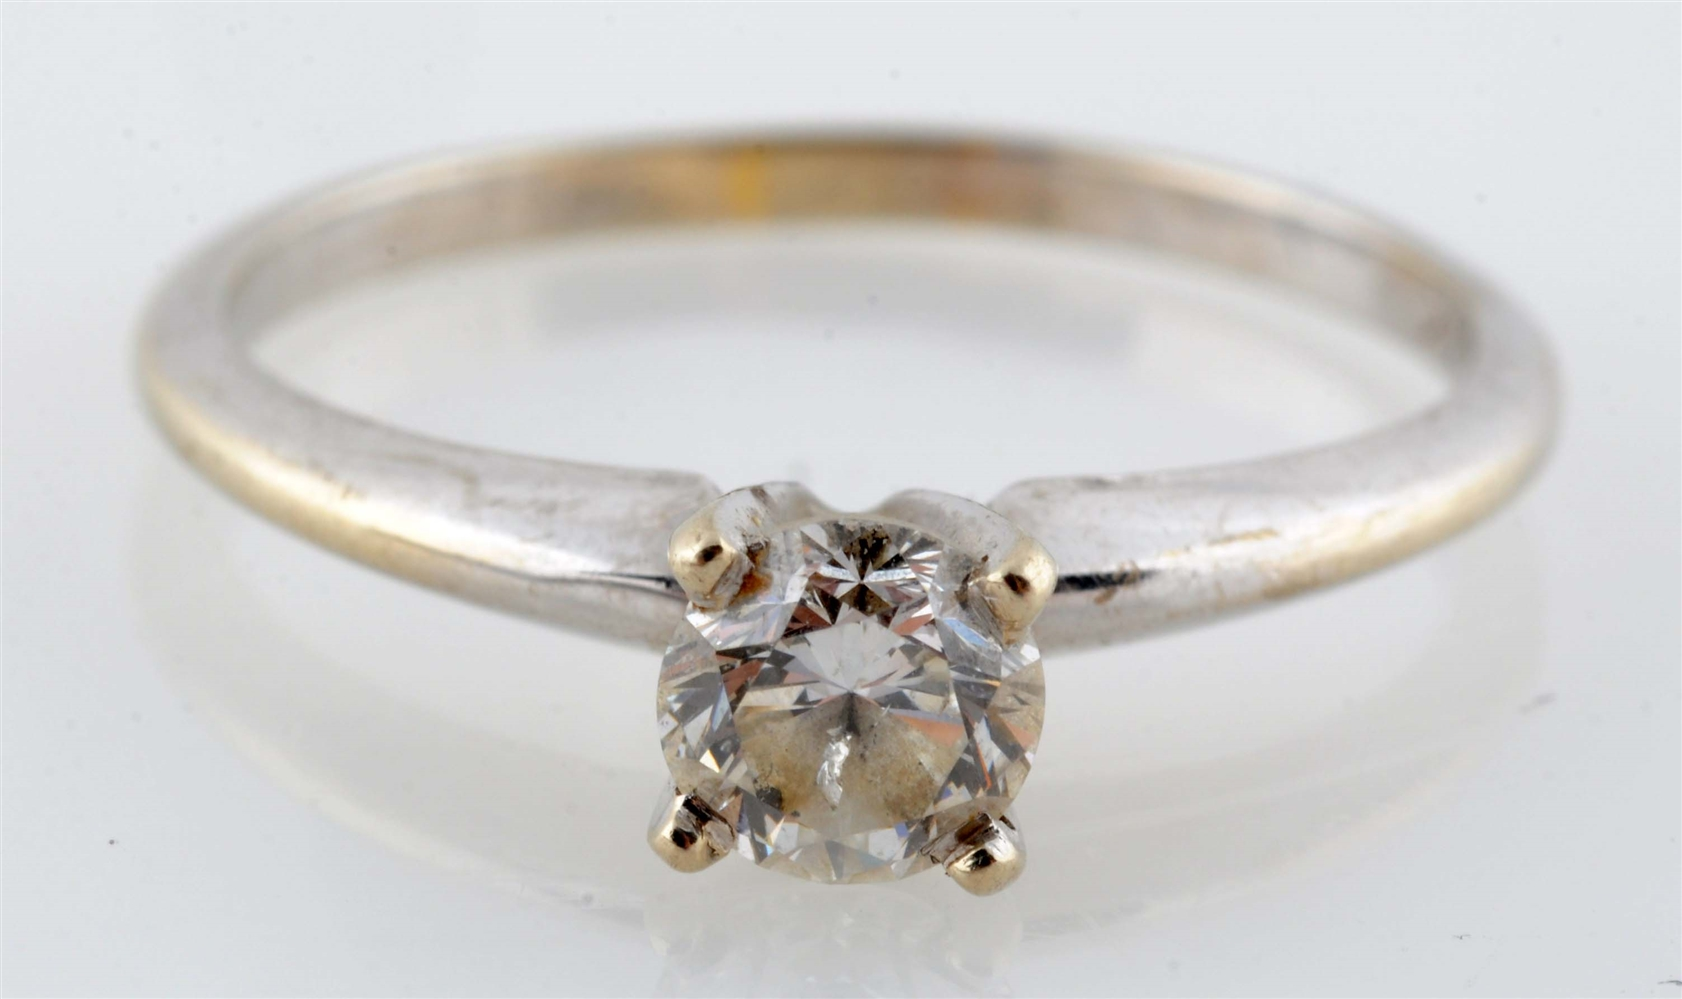 14k White Gold Ring with 0.54 Brilliant Diamond Center